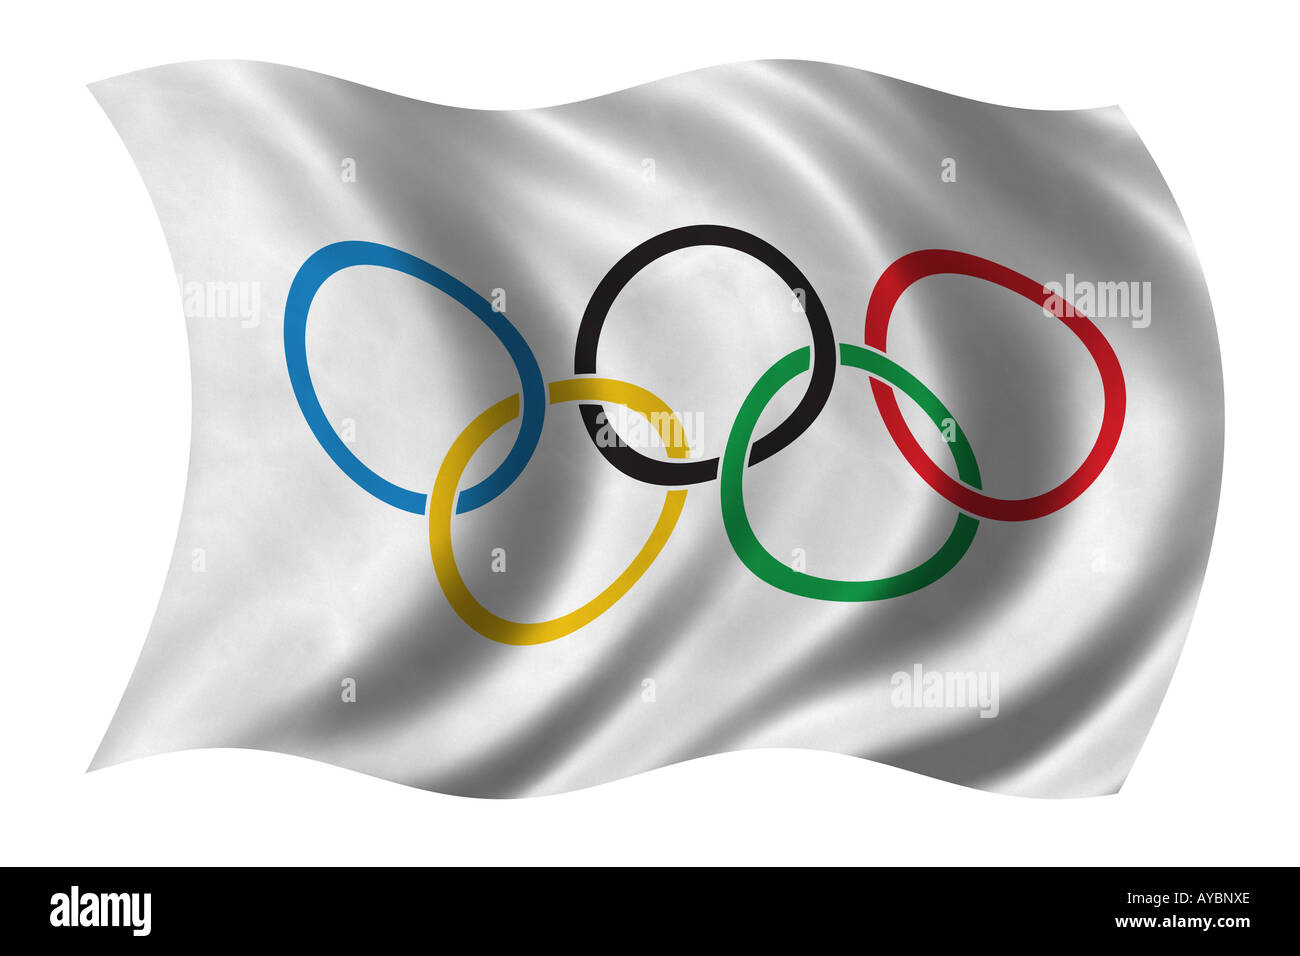 Olympic Flag - Stock Image